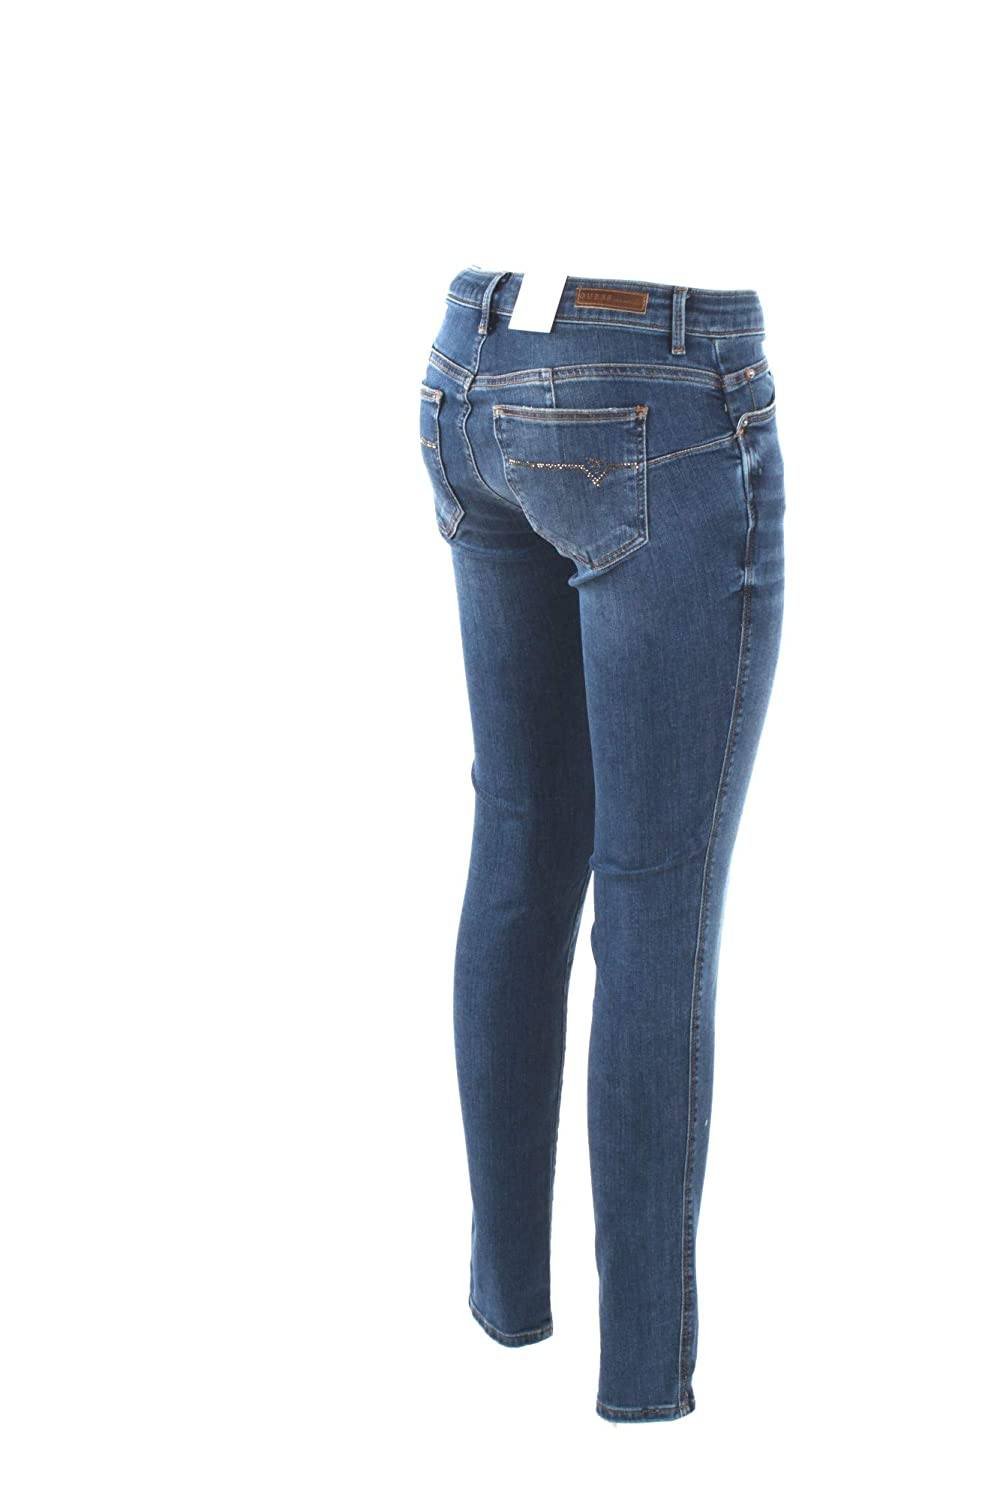 Guess Jeans Donna 27 Denim W92aj2 D3lb0 Primavera Estate ...